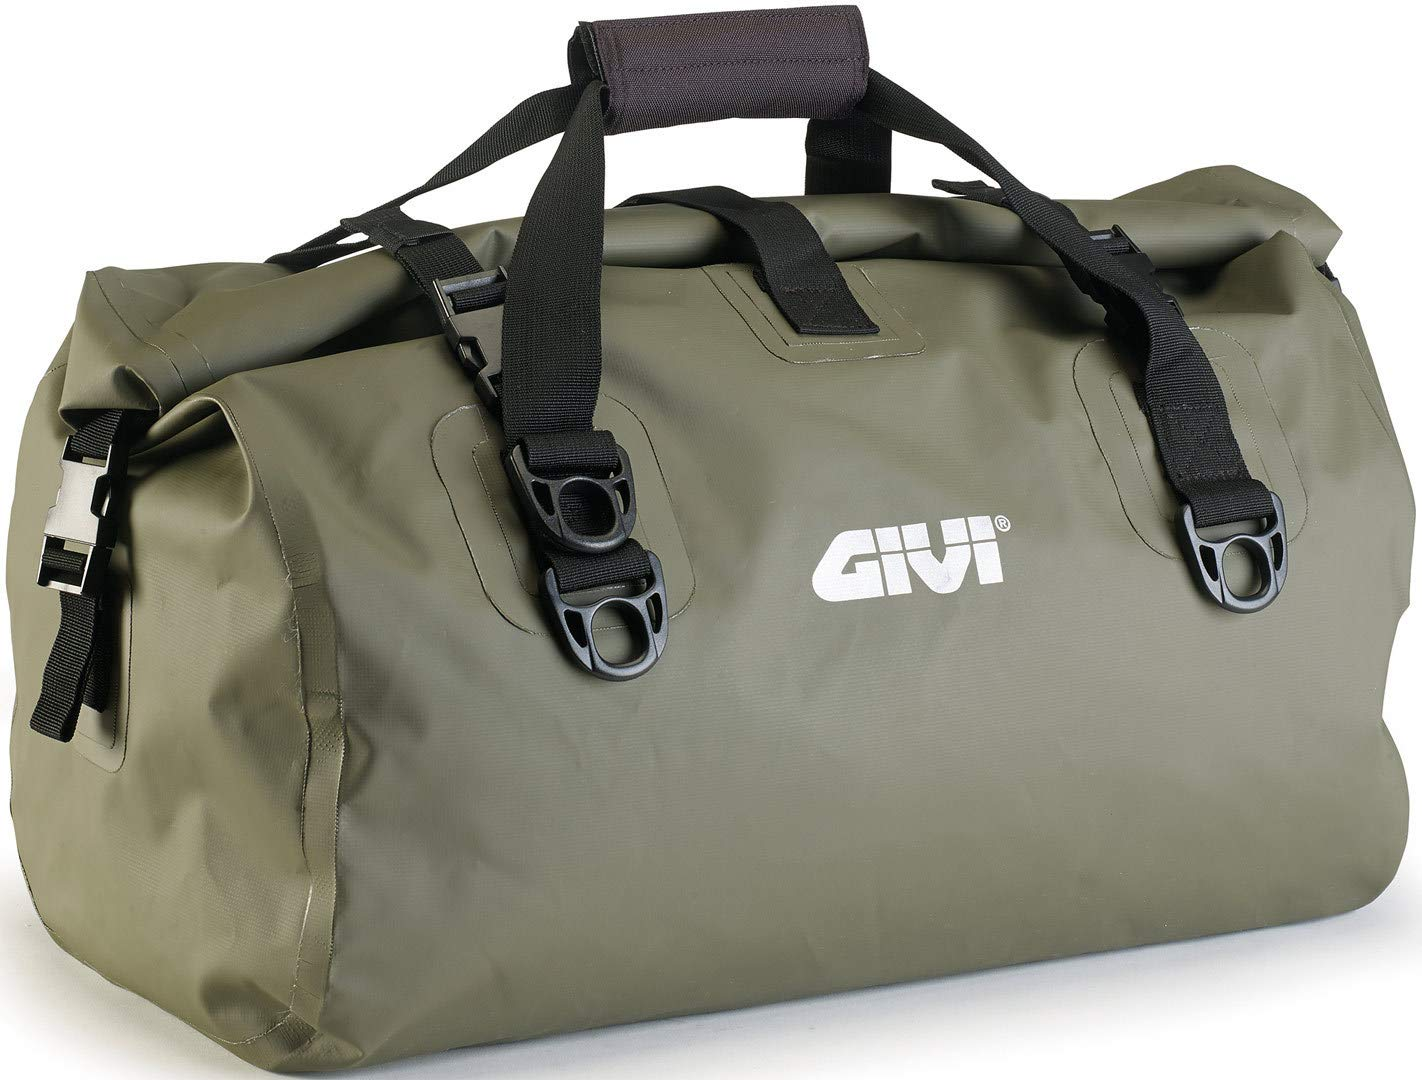 bdca2b49d9 Givi EA115KG Motorcycle Motorbike Waterproof Cylinder Seat Bag 40 Litre -  Green  Amazon.co.uk  Car   Motorbike